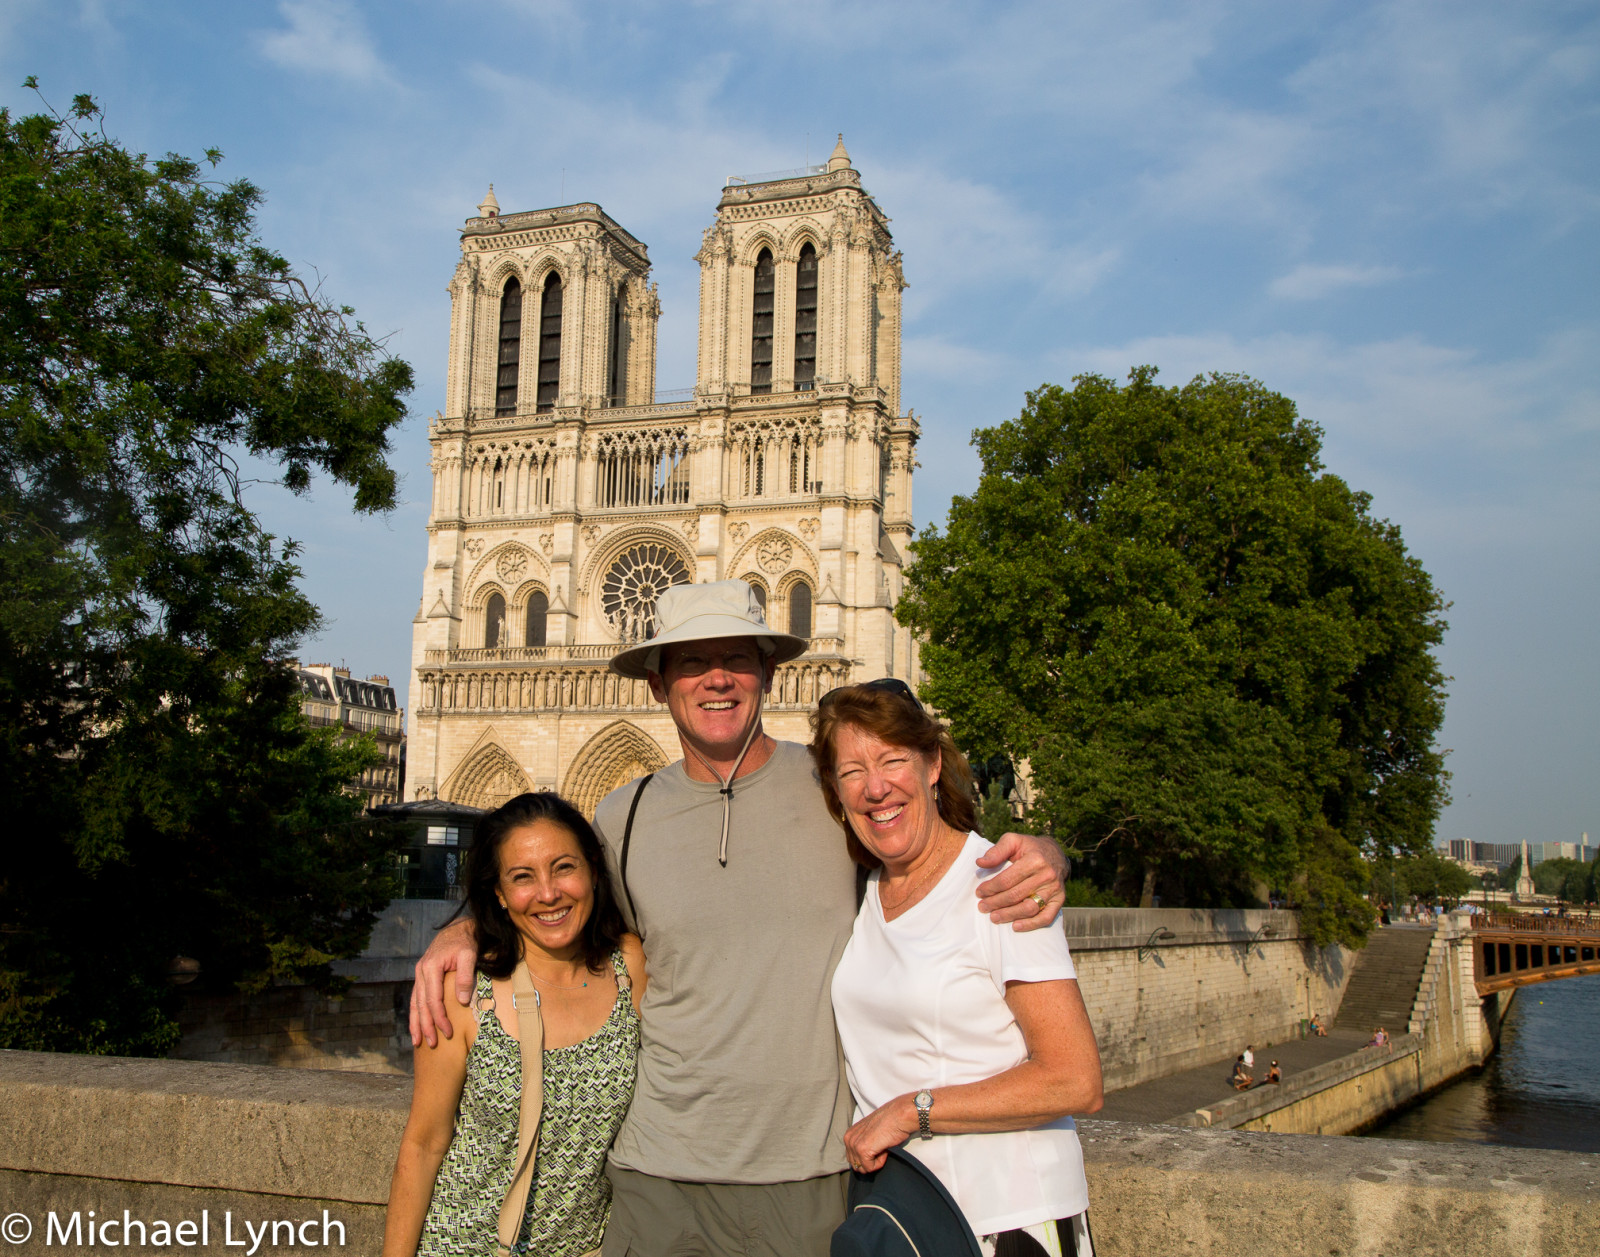 Veronica, Phil, and Sharon in front of Notre Dame